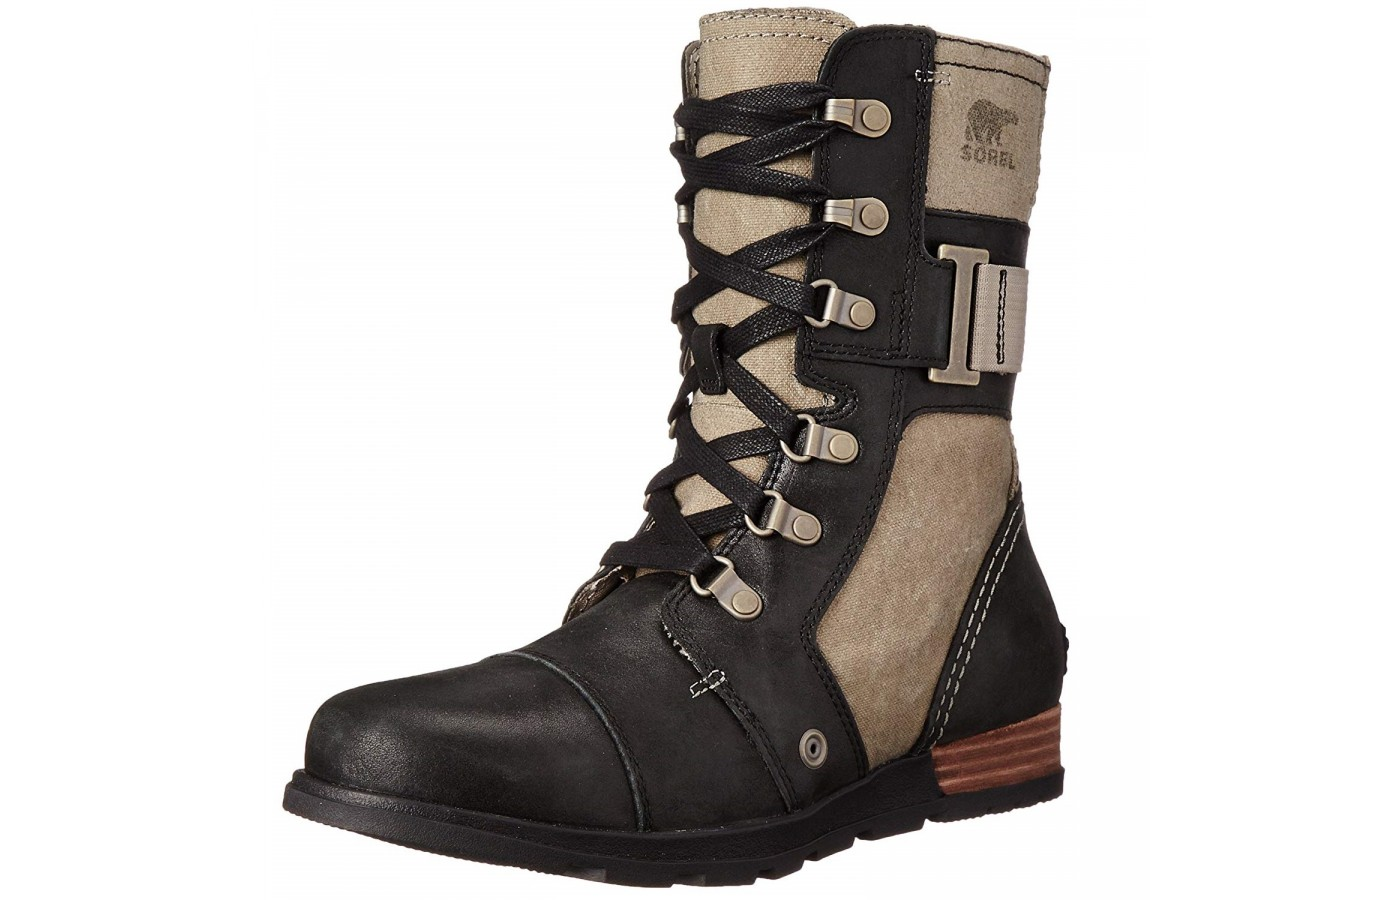 The Sorel Major Carly offer all leather uppers for protection from moisture.